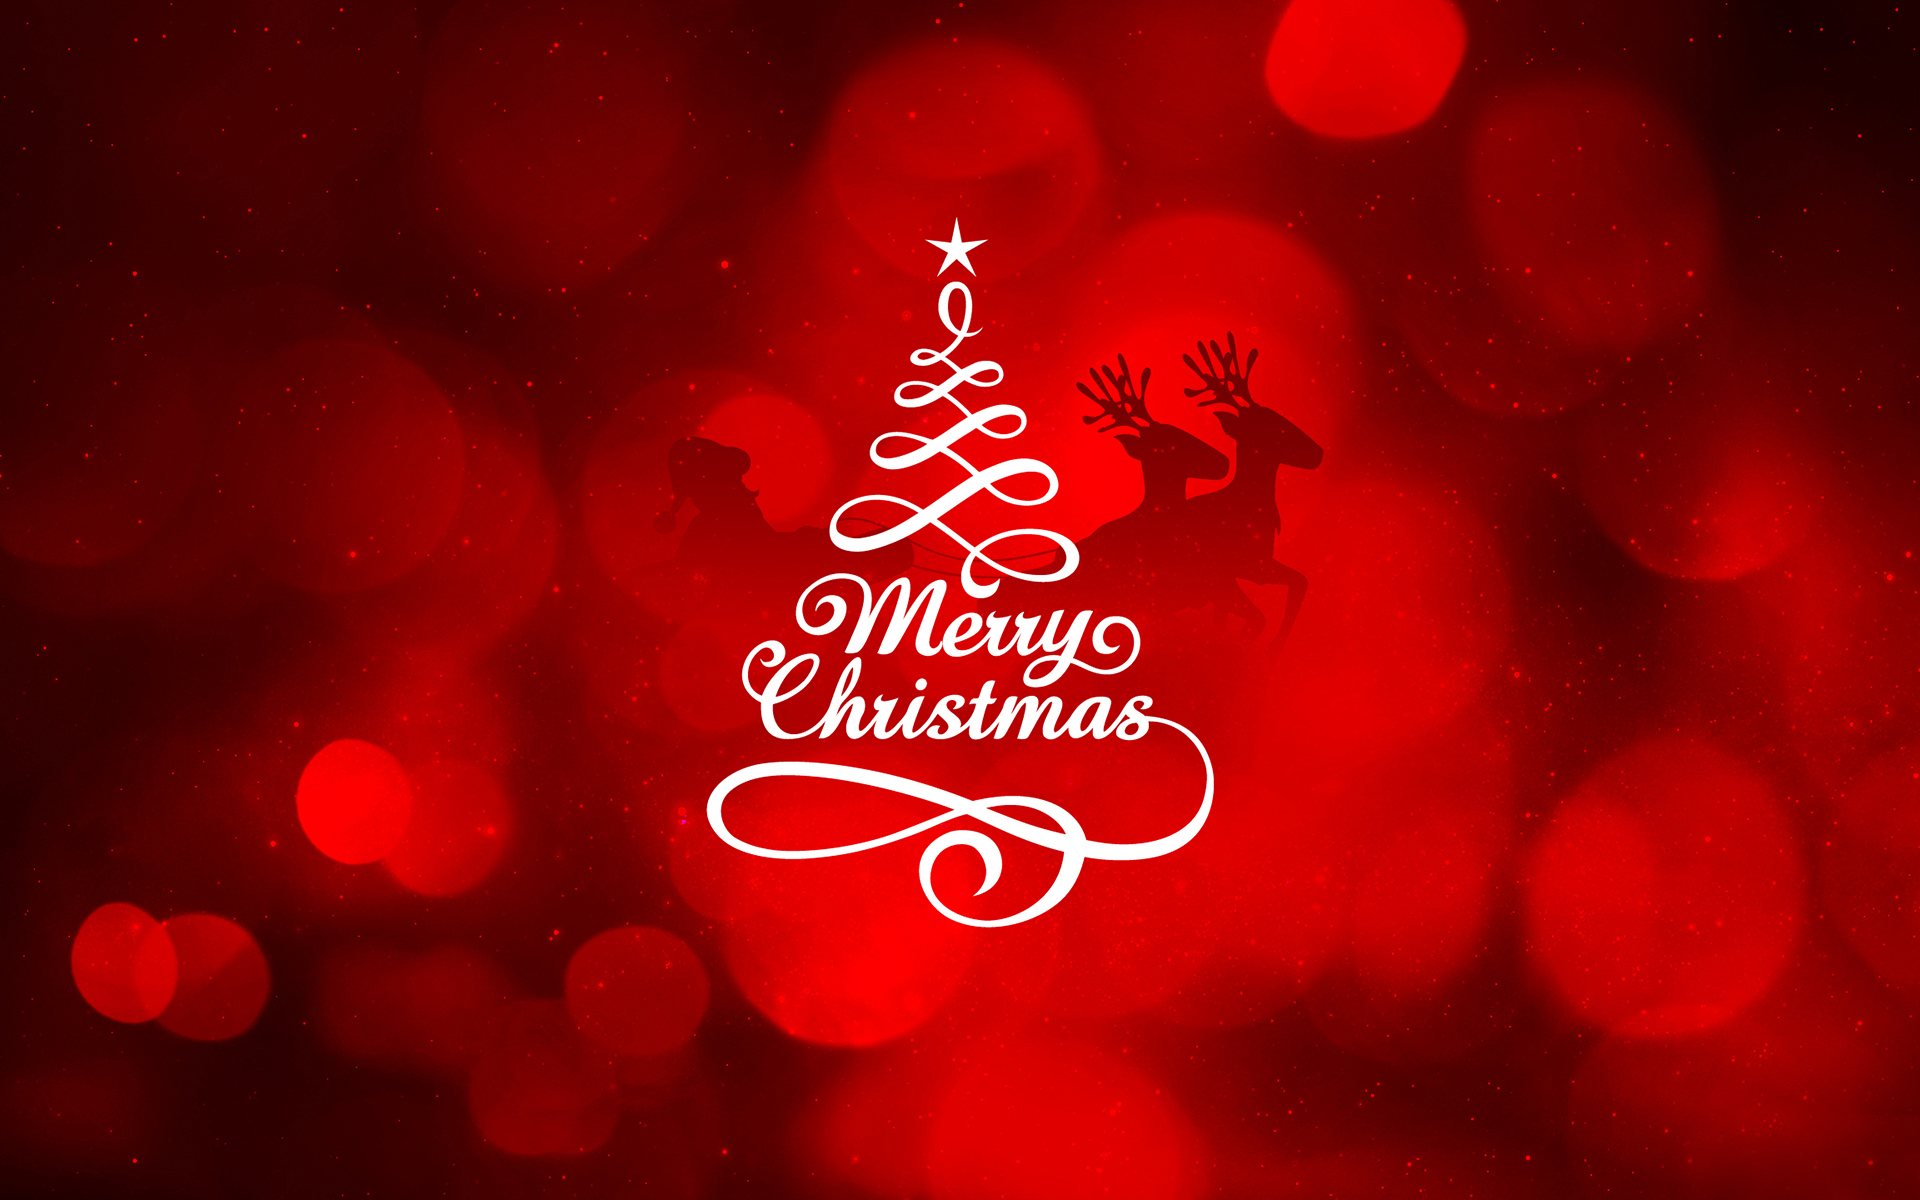 Merry Christmas New 2014 HD Wallpapers 1920x1200